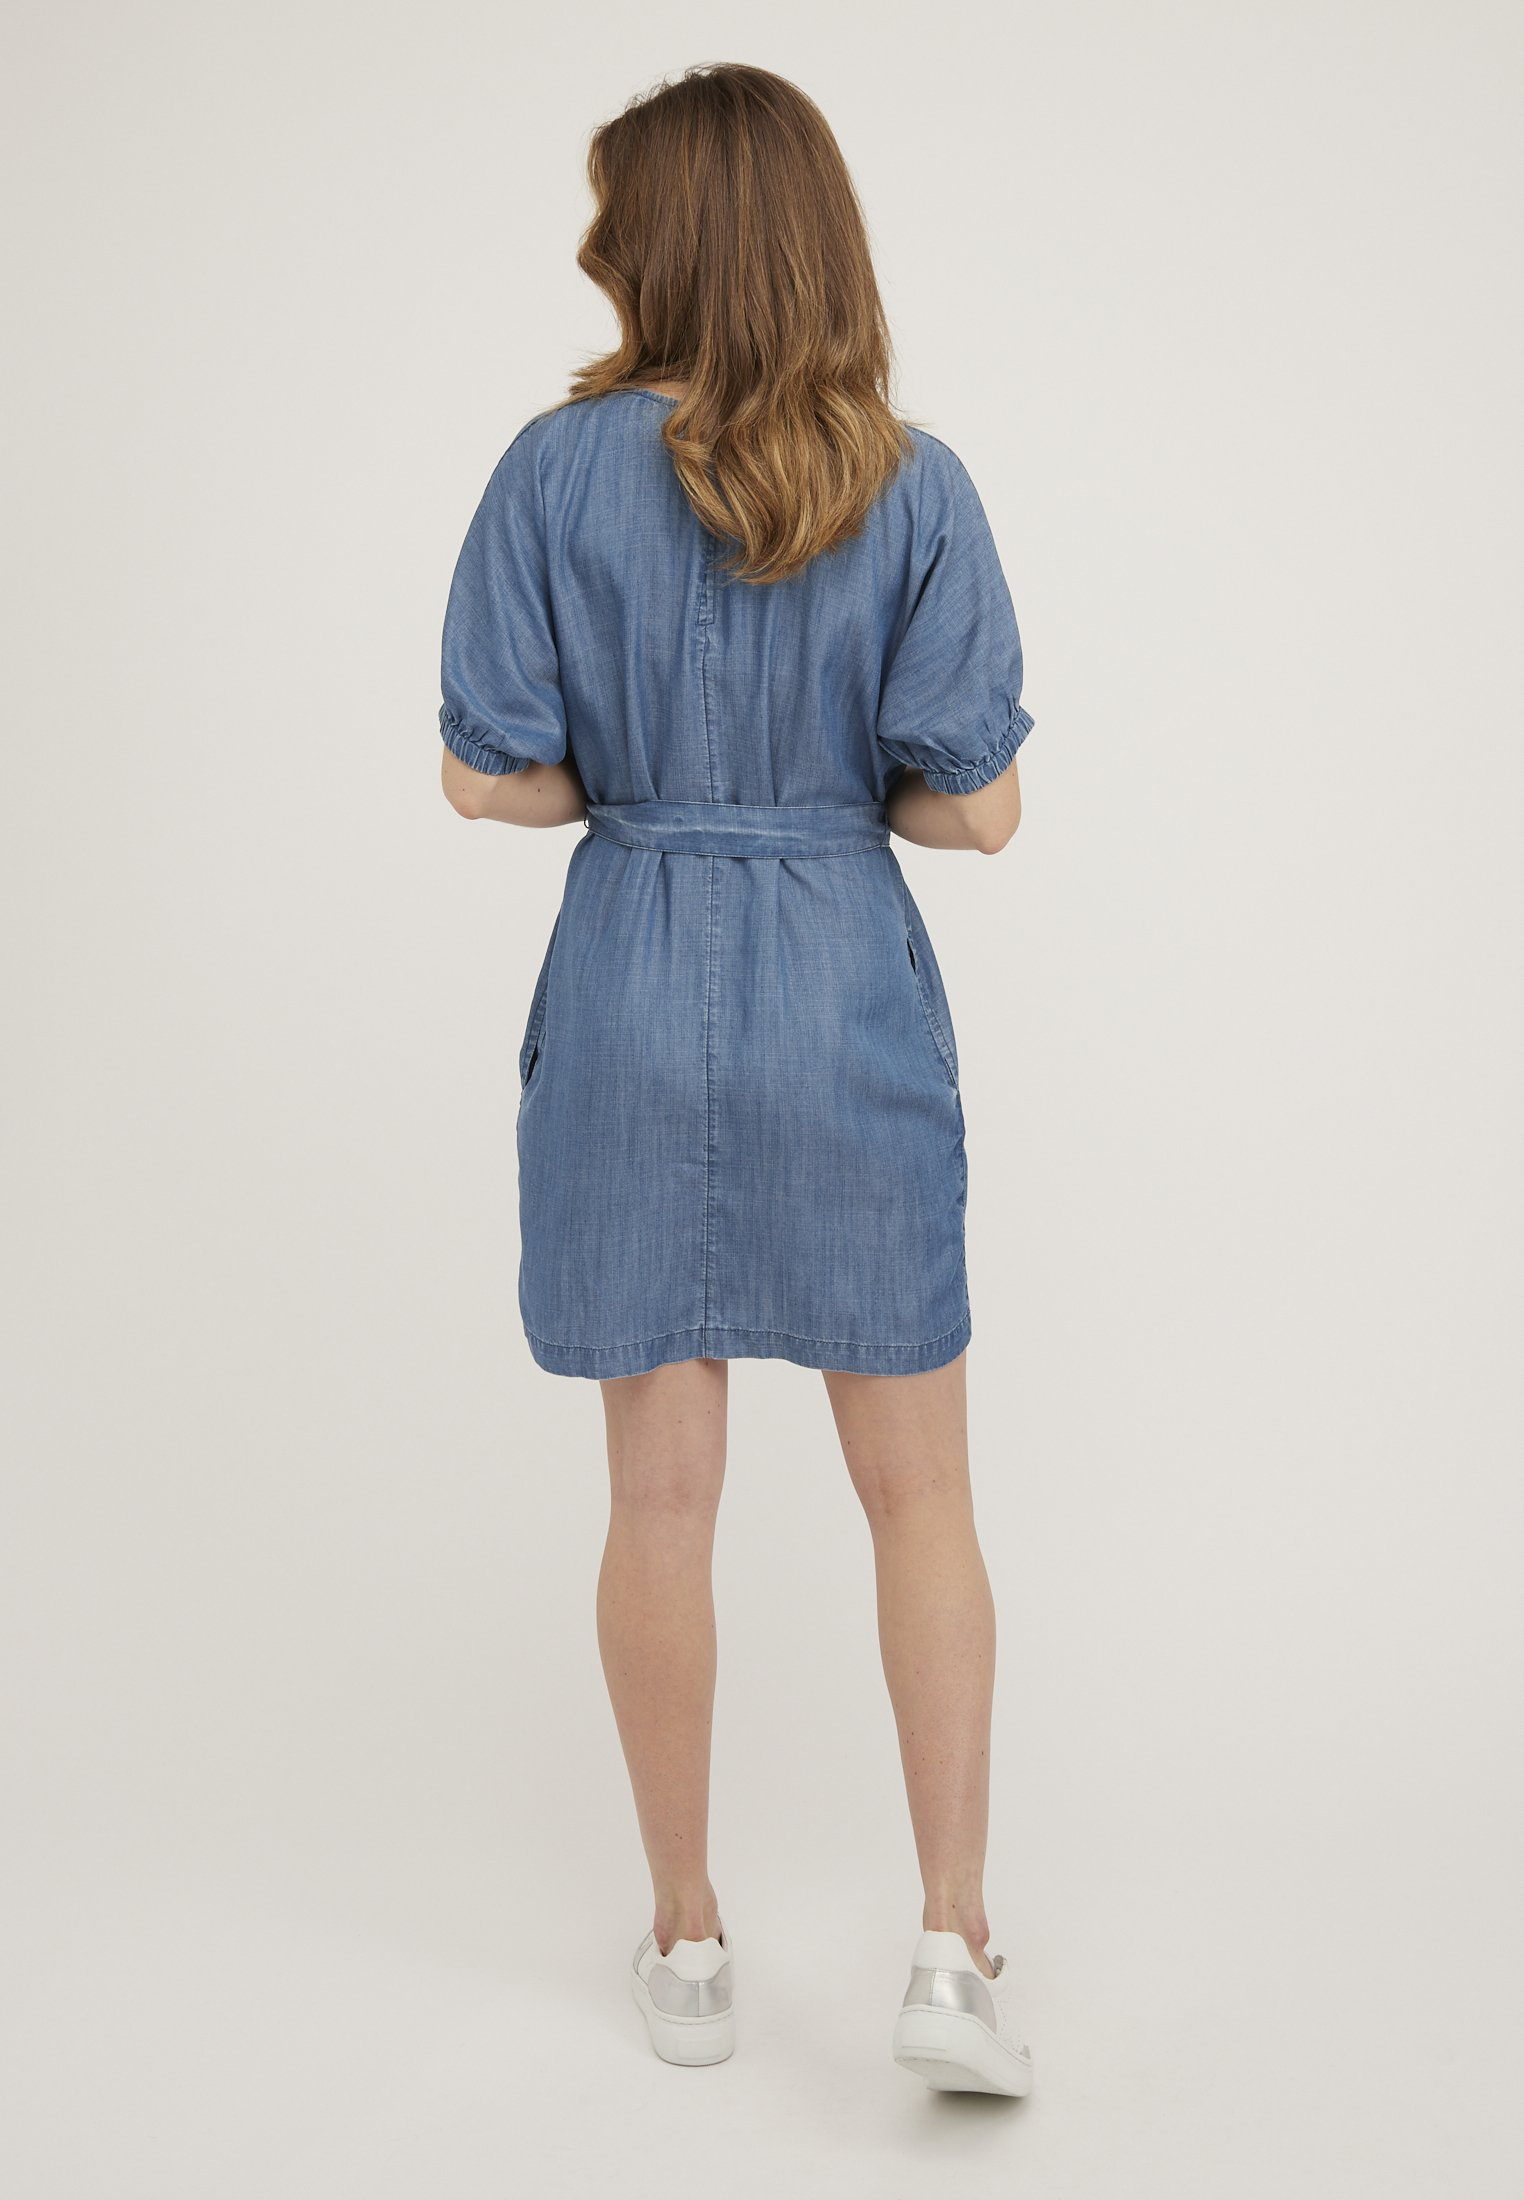 Oliver Bonas CHAMBRAY - Robe en jean - blue - Robes femme G9lo0